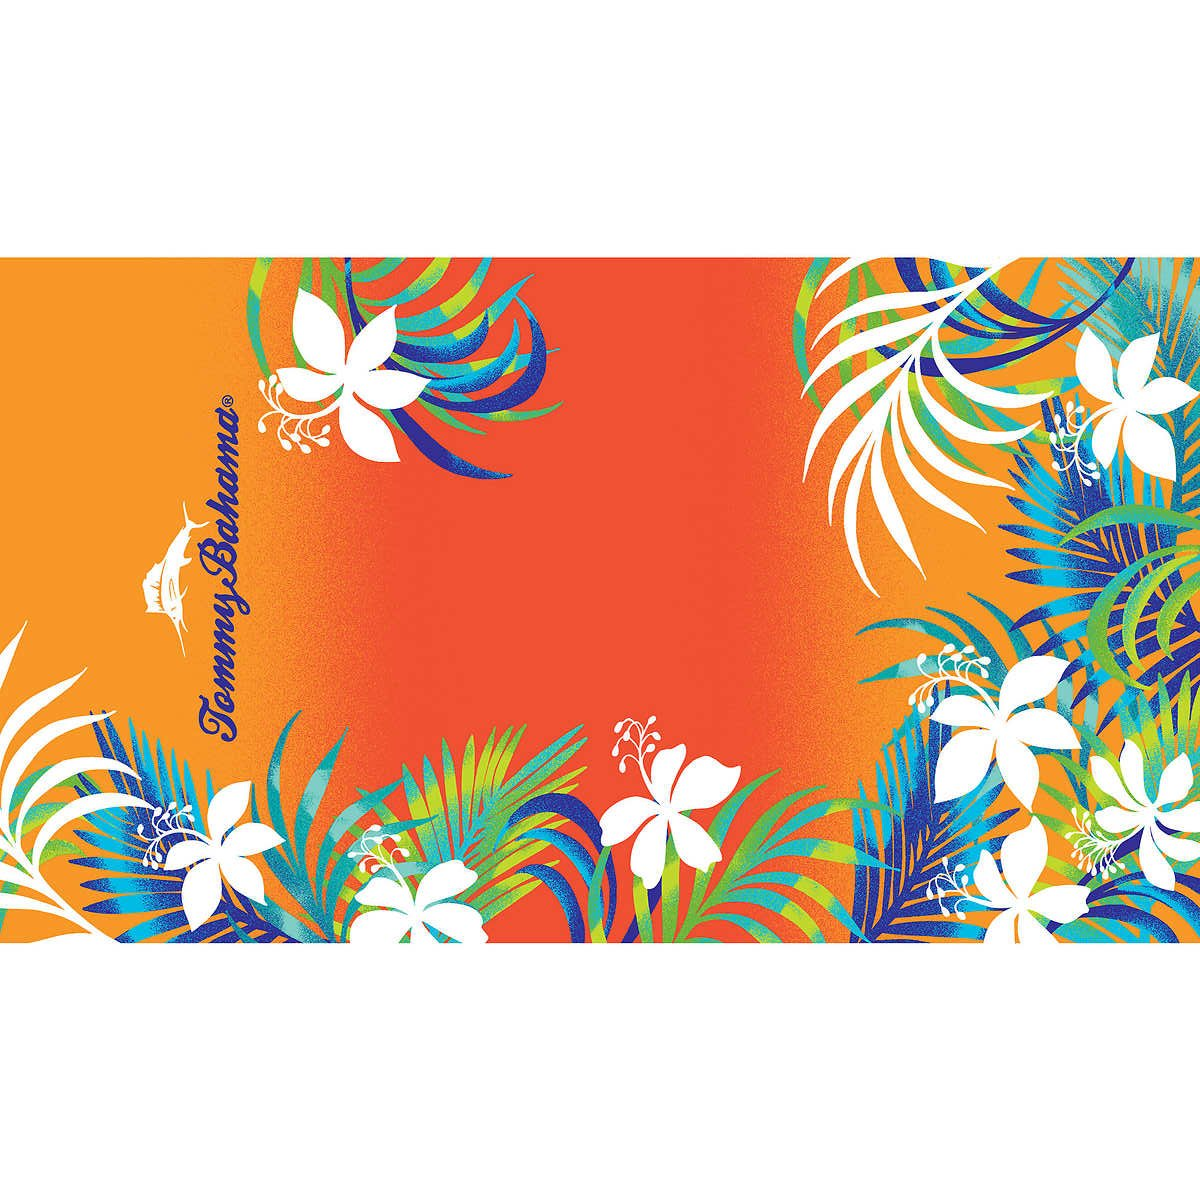 Tommy Bahama Beach Towel, Features Tropical Grove Design, Absorbent and Soft, Dimension 40'' x 70'' by Tommy Bahama (Image #2)